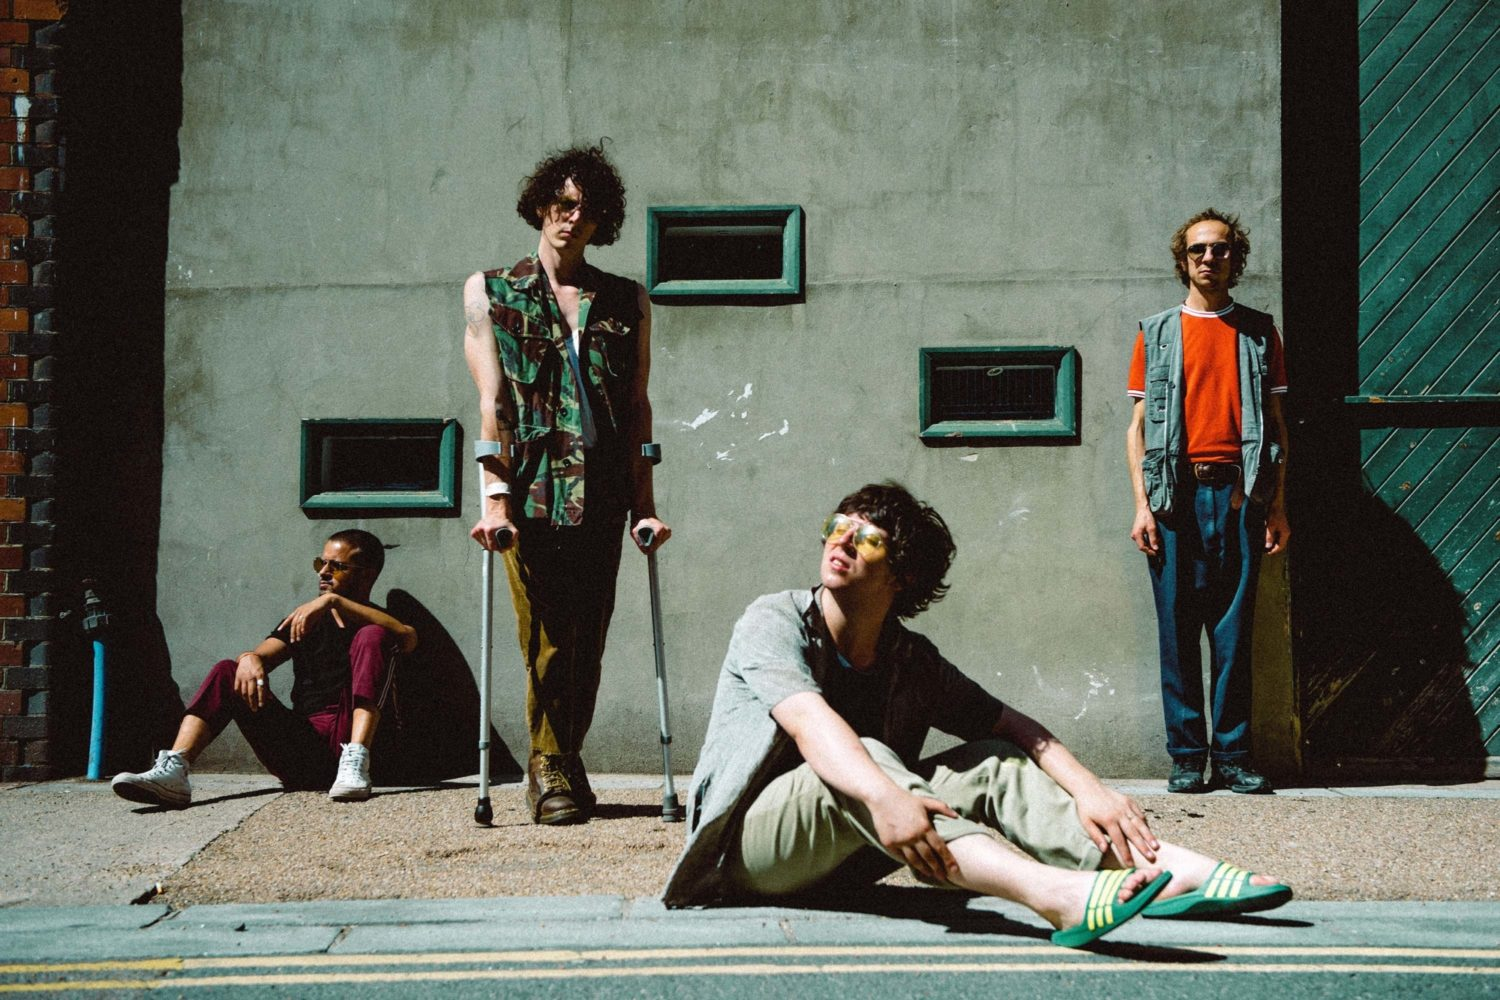 Mystery Jets share title track of forthcoming album 'A Billion Heartbeats'